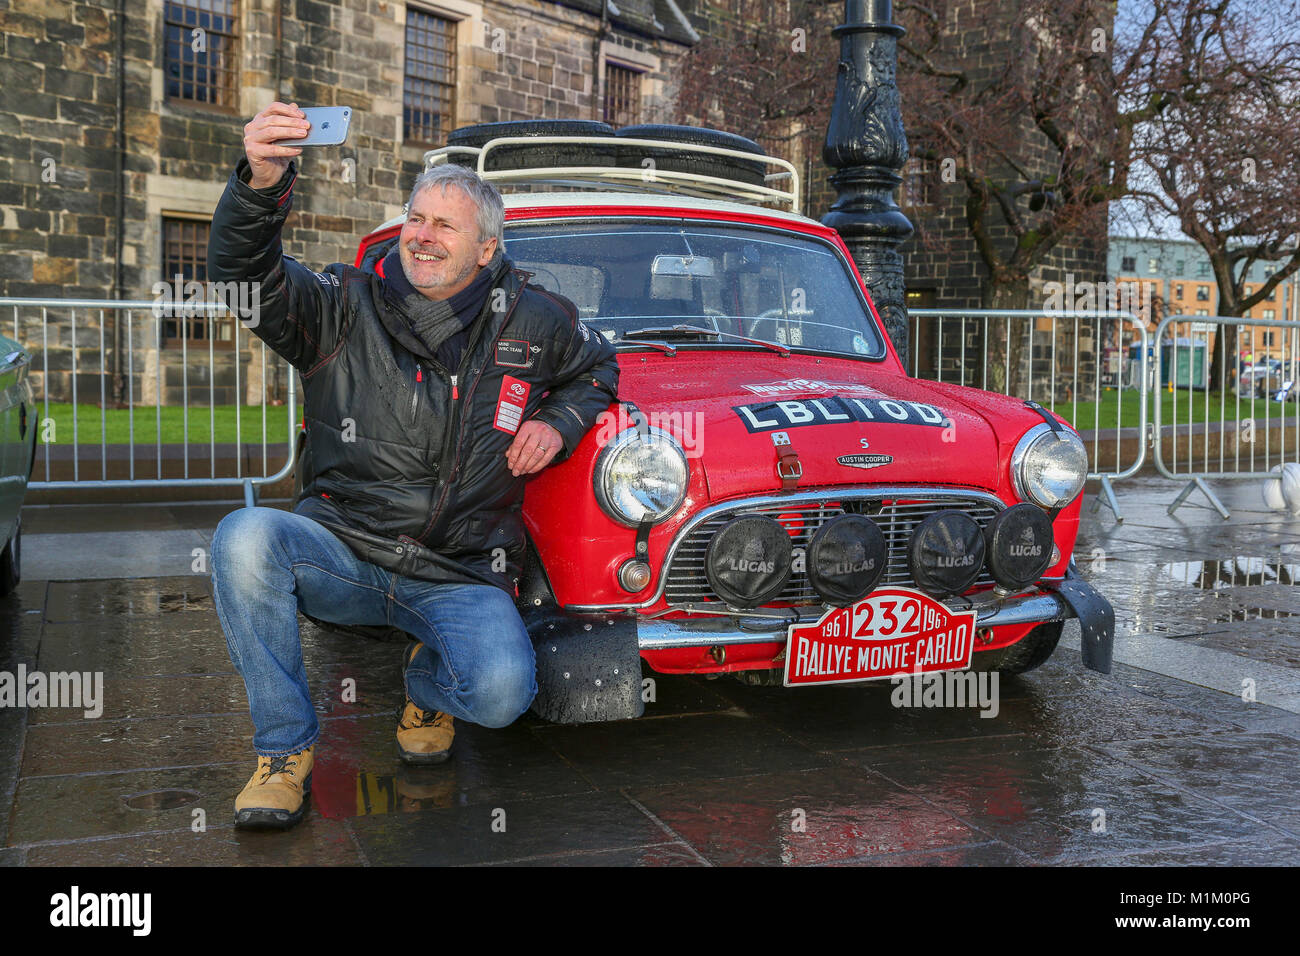 Paisley, Scotland, UK. 31st January, 2018. On a cold and sometimes very wet January day, 1000's of spectators - Stock Image